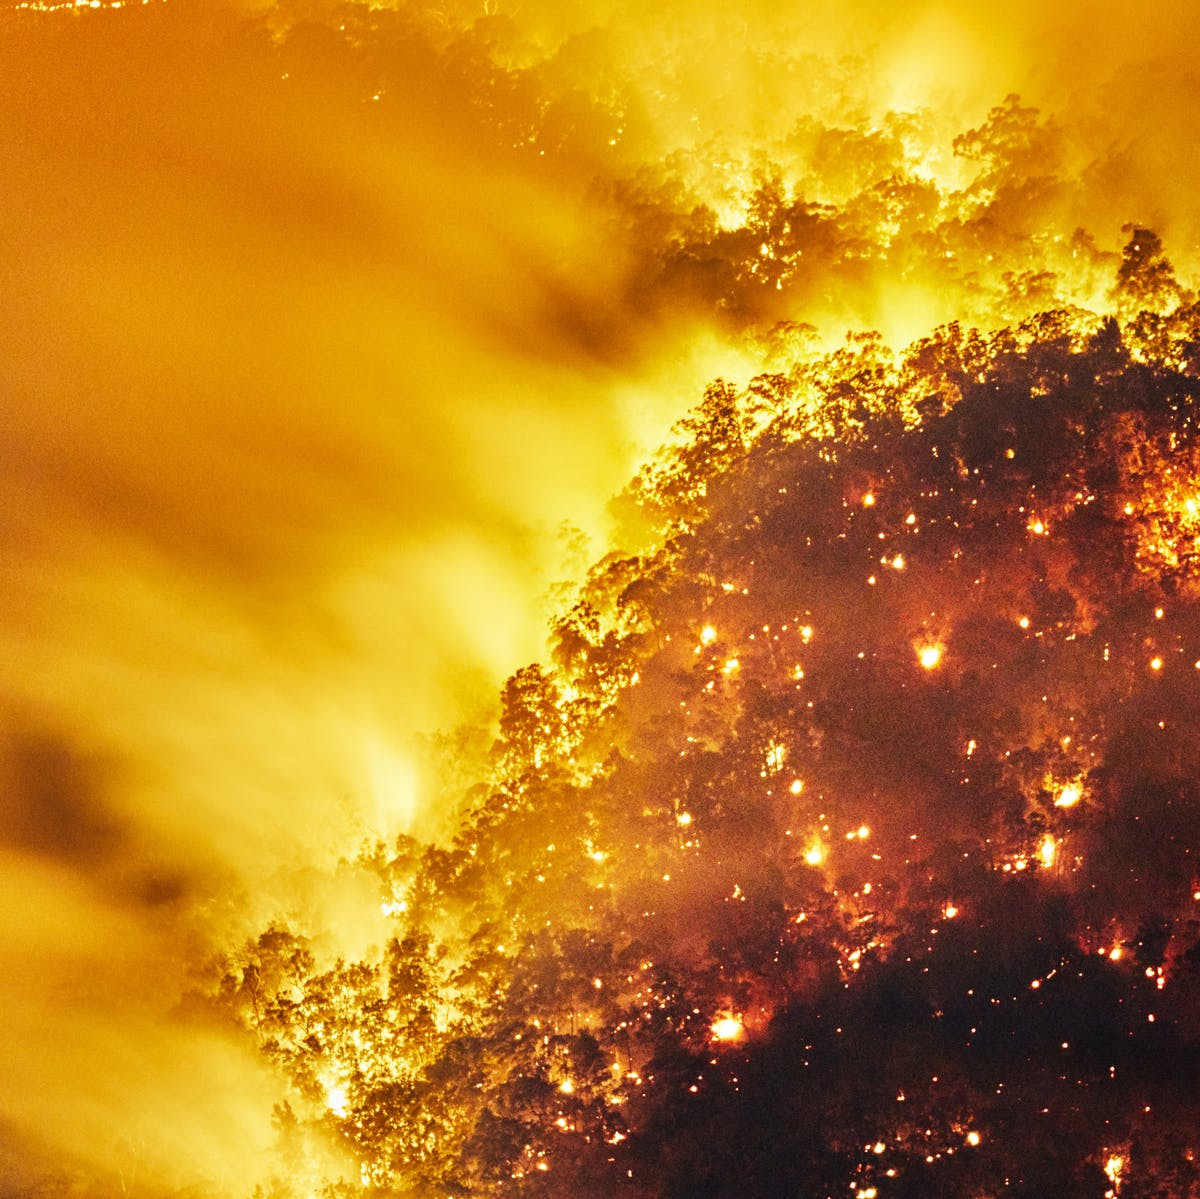 Australia's fires could change global climate patterns for the worse